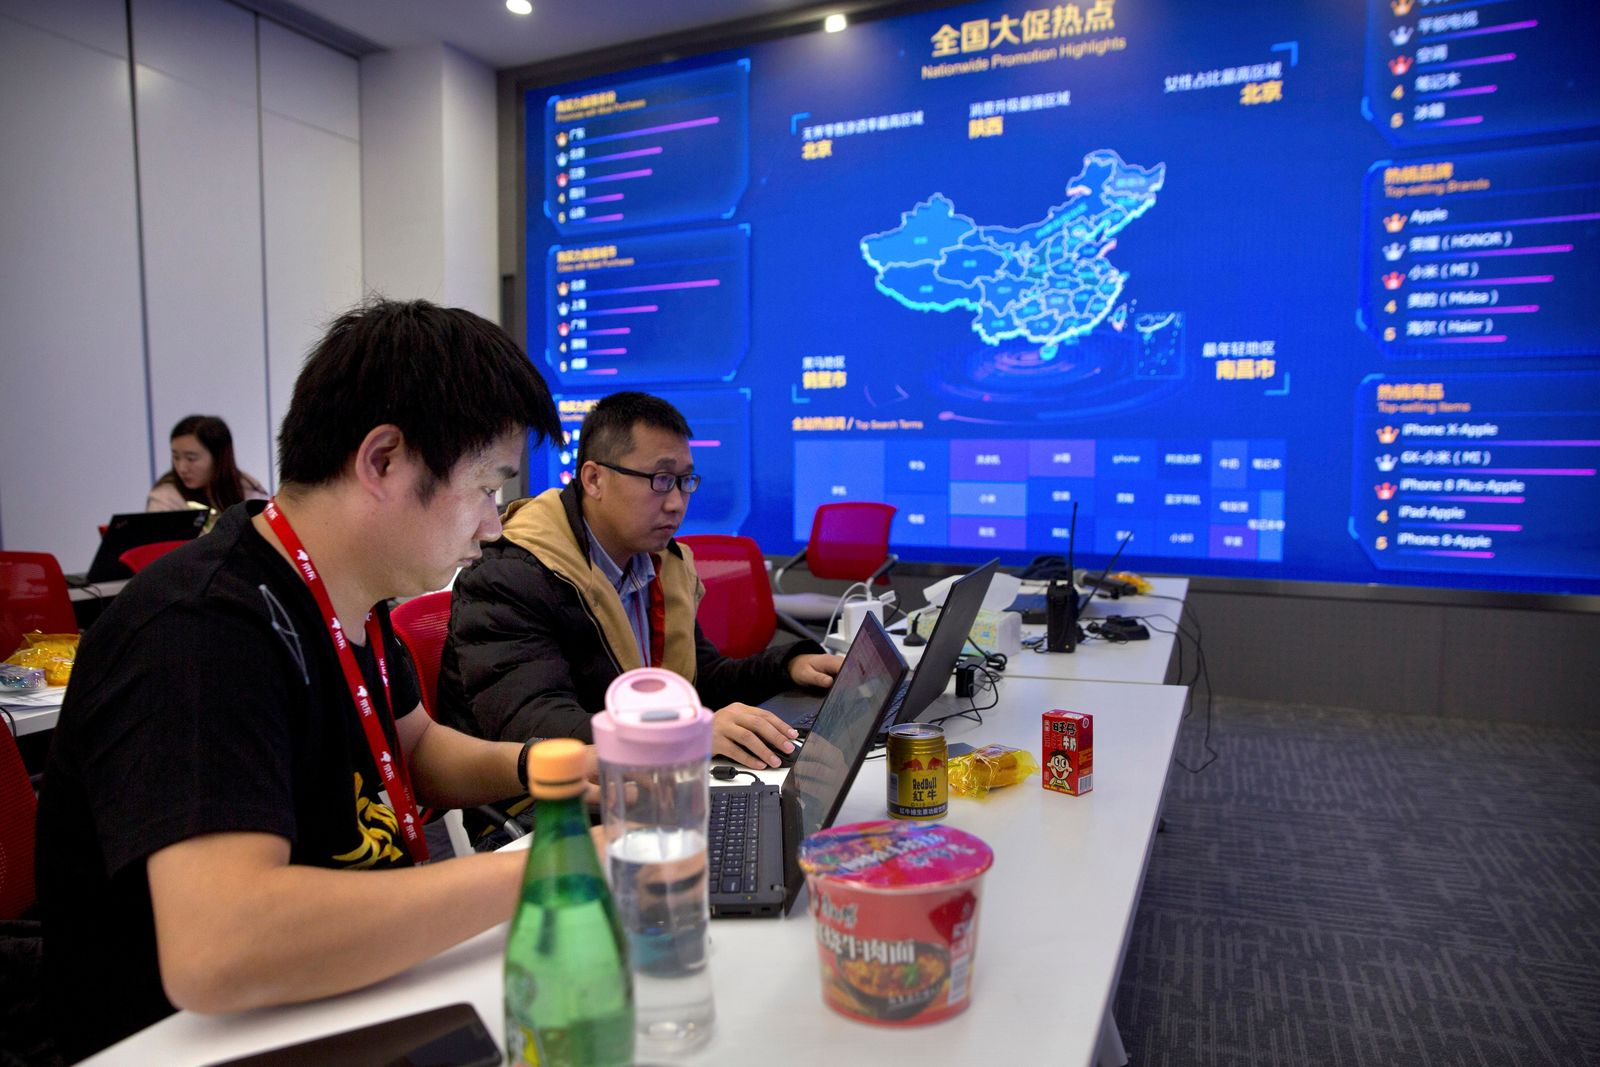 FILE - In this Nov. 11, 2018, file photo, workers use their laptops near a display showing sales data at the command center at the headquarters of an e-commerce retailer in Beijing. Remarks by the head of Chinese online business giant Alibaba that young people should work 12-hour days, six days a week if they want financial success have prompted a public debate over work-life balance in the country. (AP Photo/Mark Schiefelbein, File)